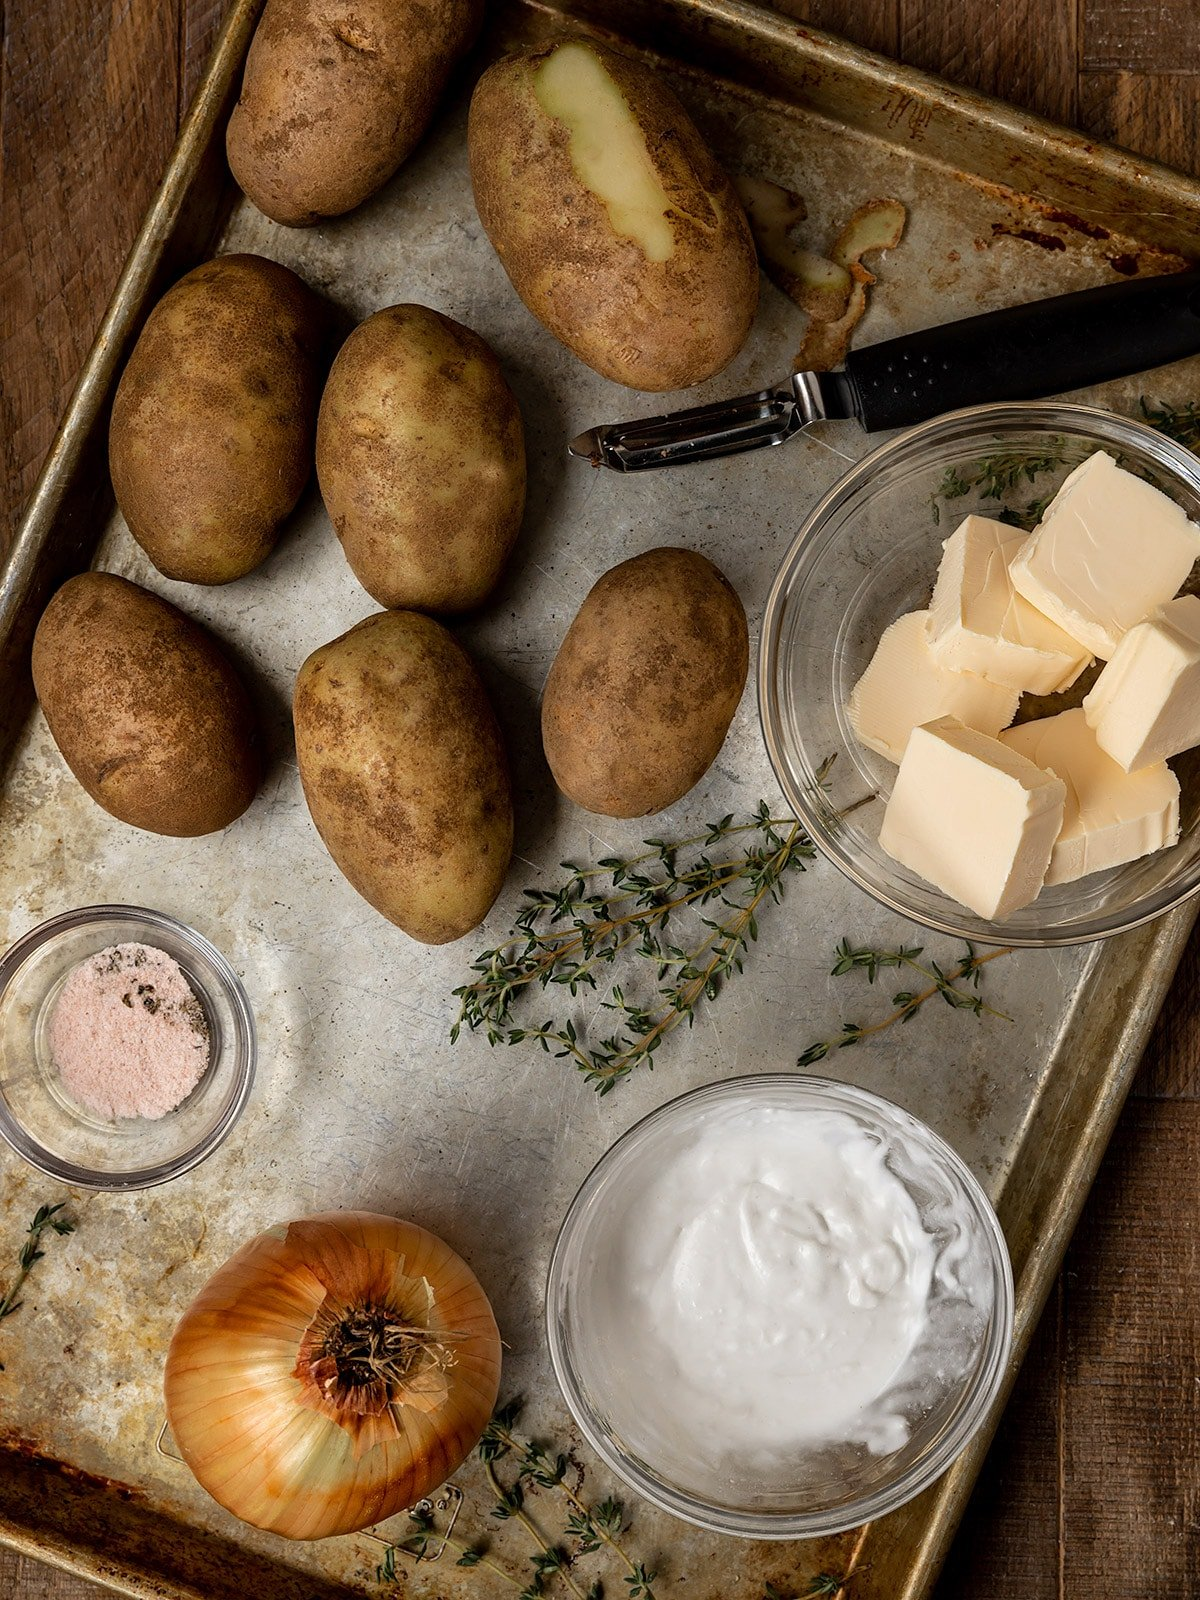 tray of ingredients including potatoes, vegan butter, coconut milk, fresh thyme, salt, pepper, and an onion